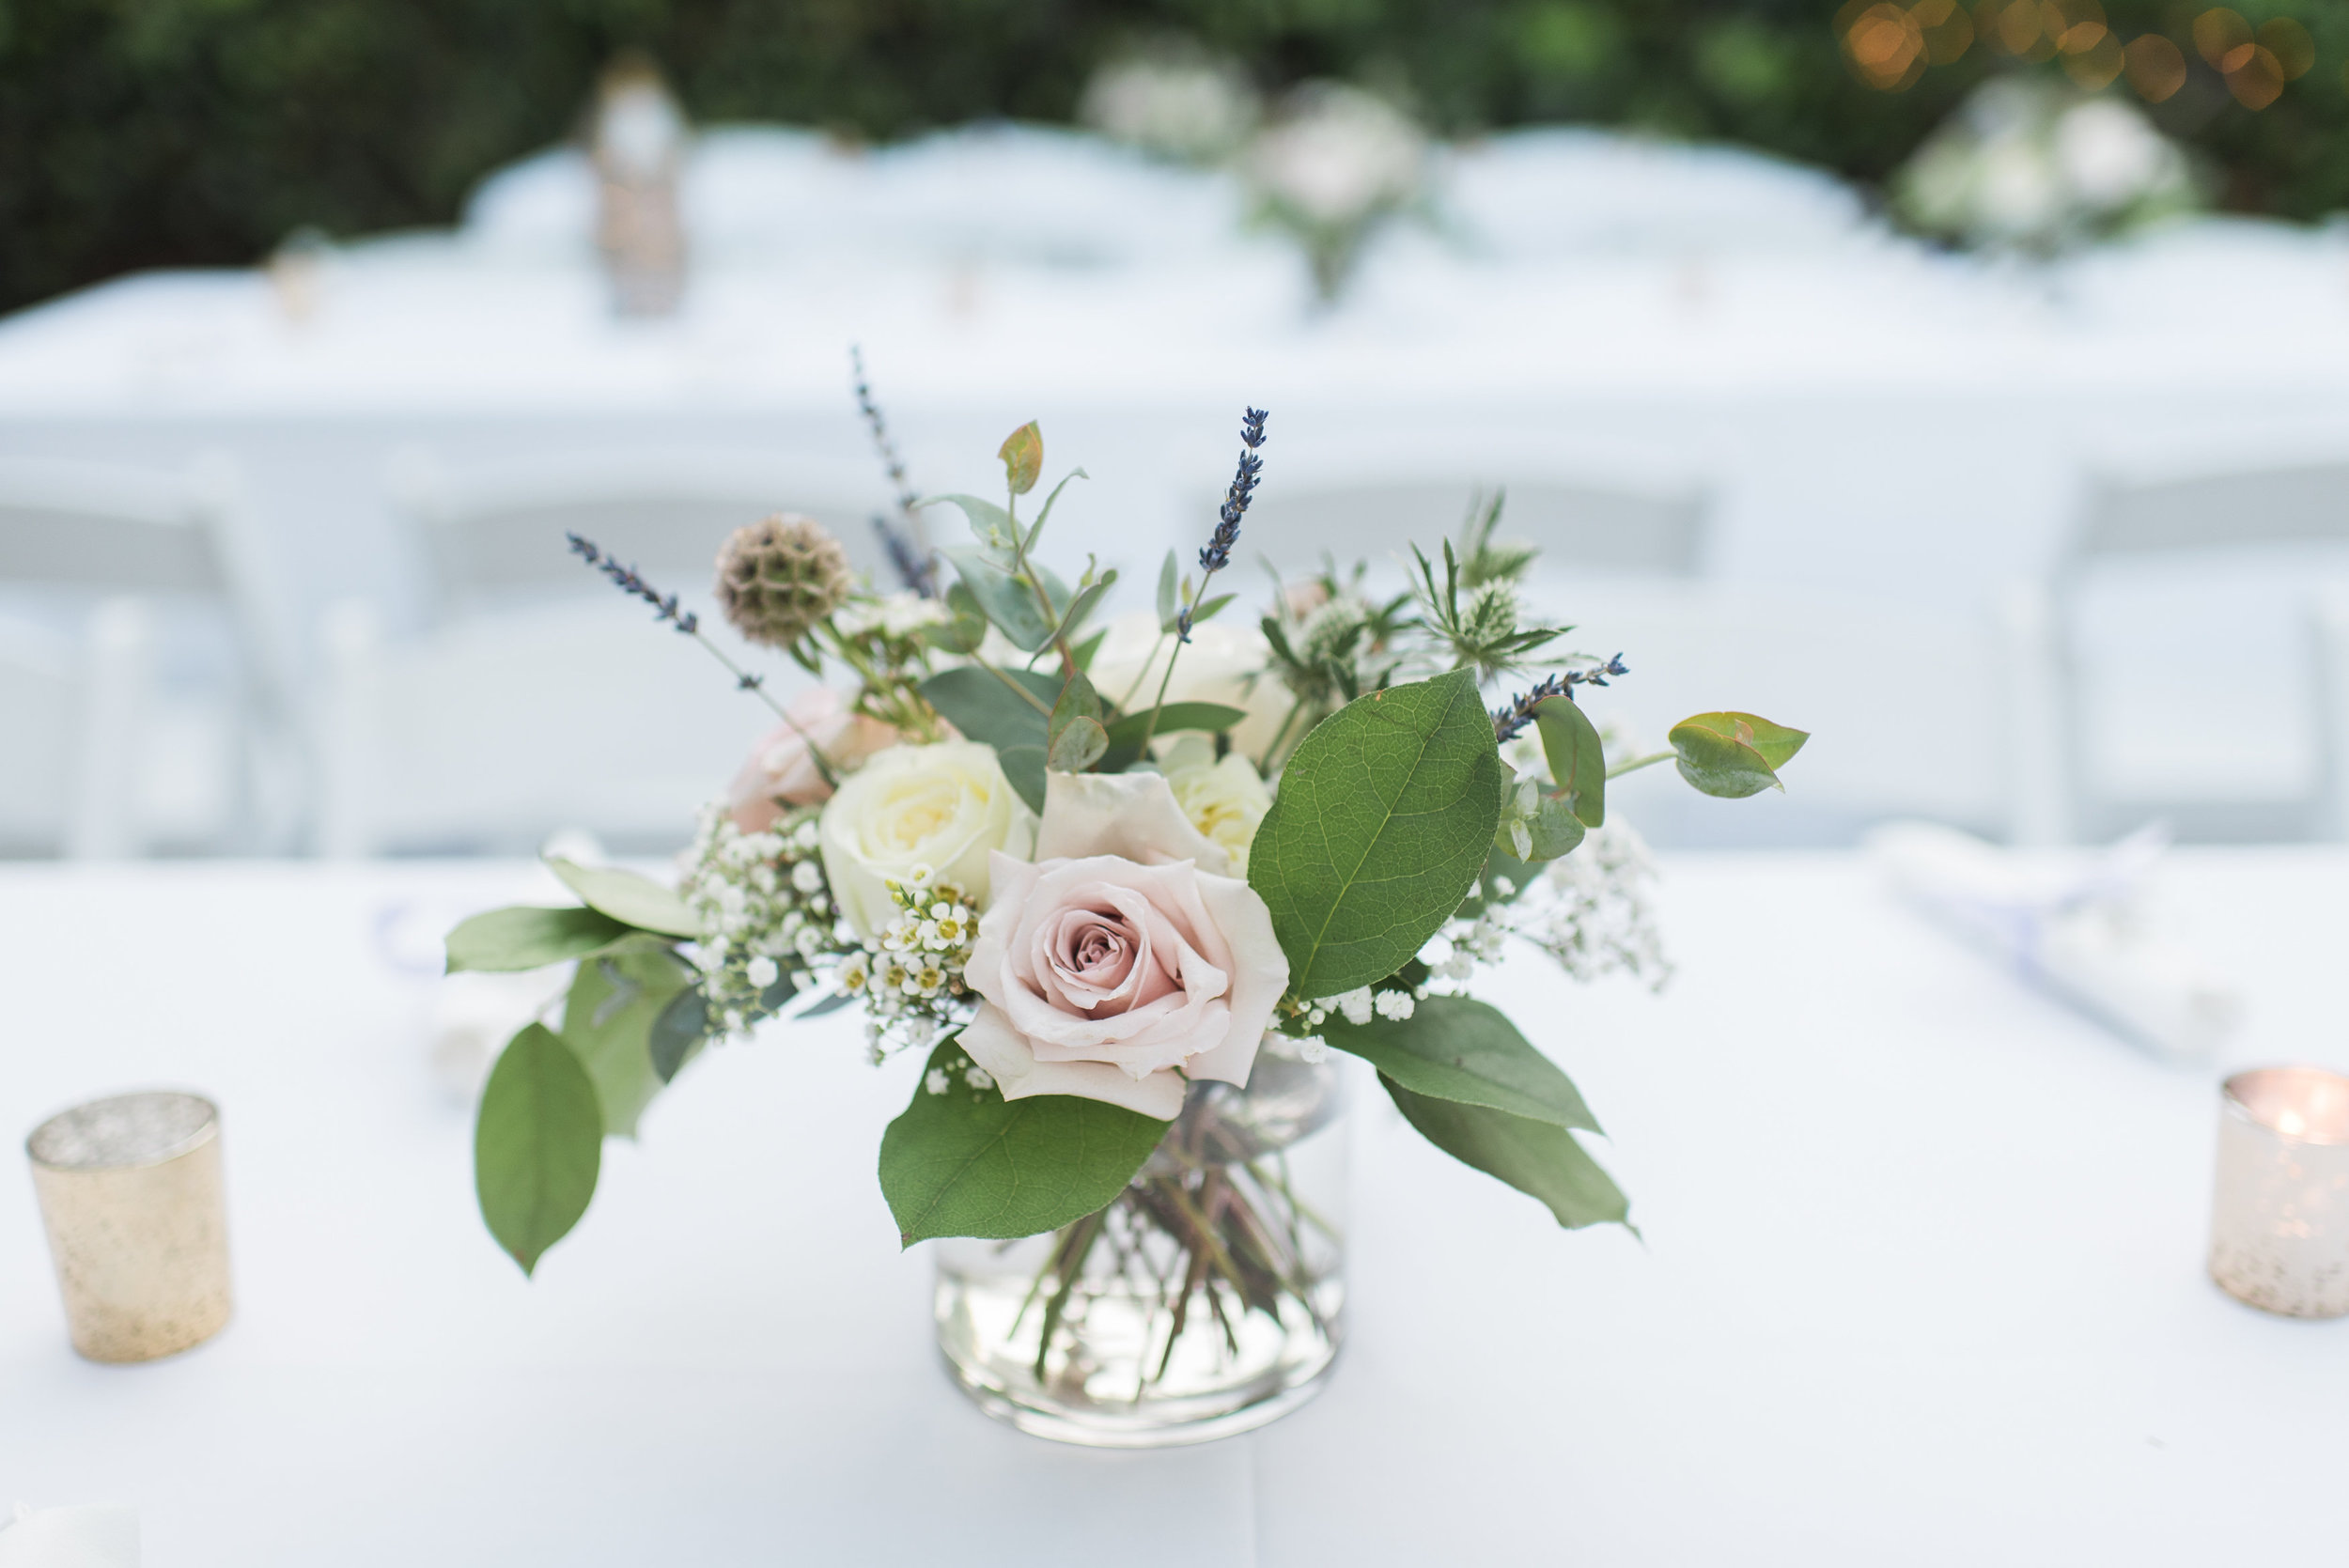 sav floral design | captured by jessica hickerson photography